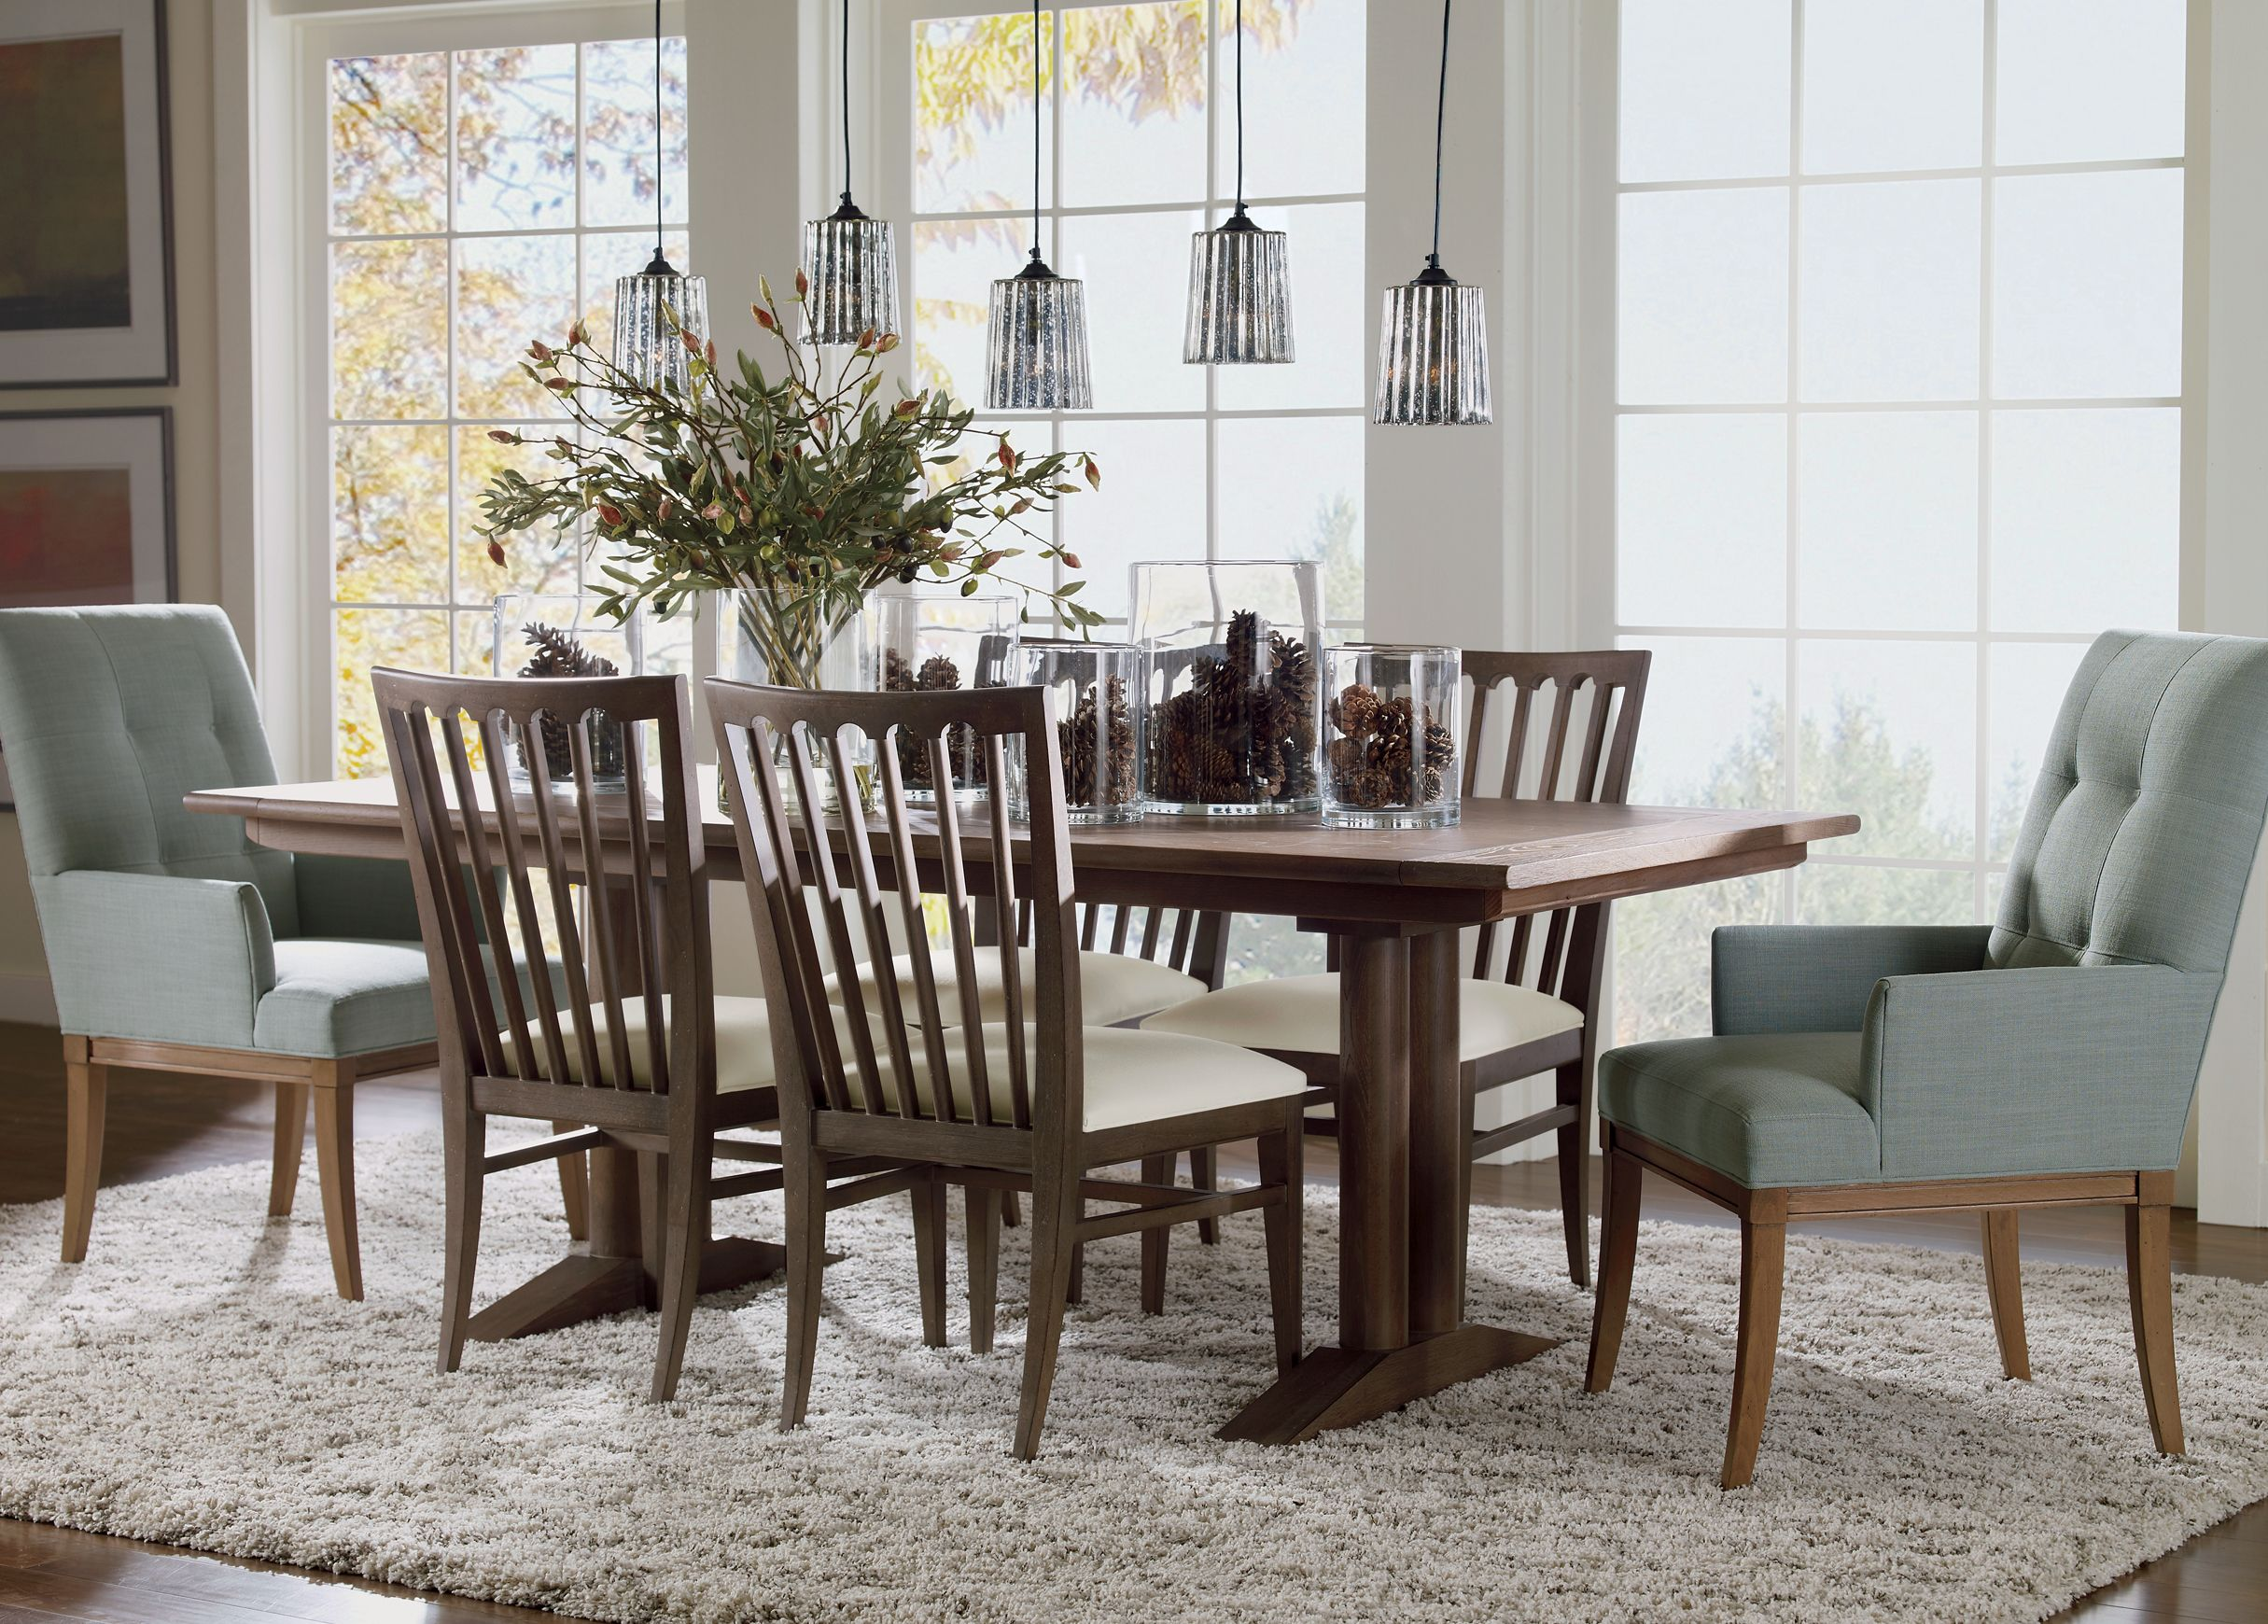 Sayer Dining Room Furniture Dining Room Table Extension Dining Table Dining Table Chairs